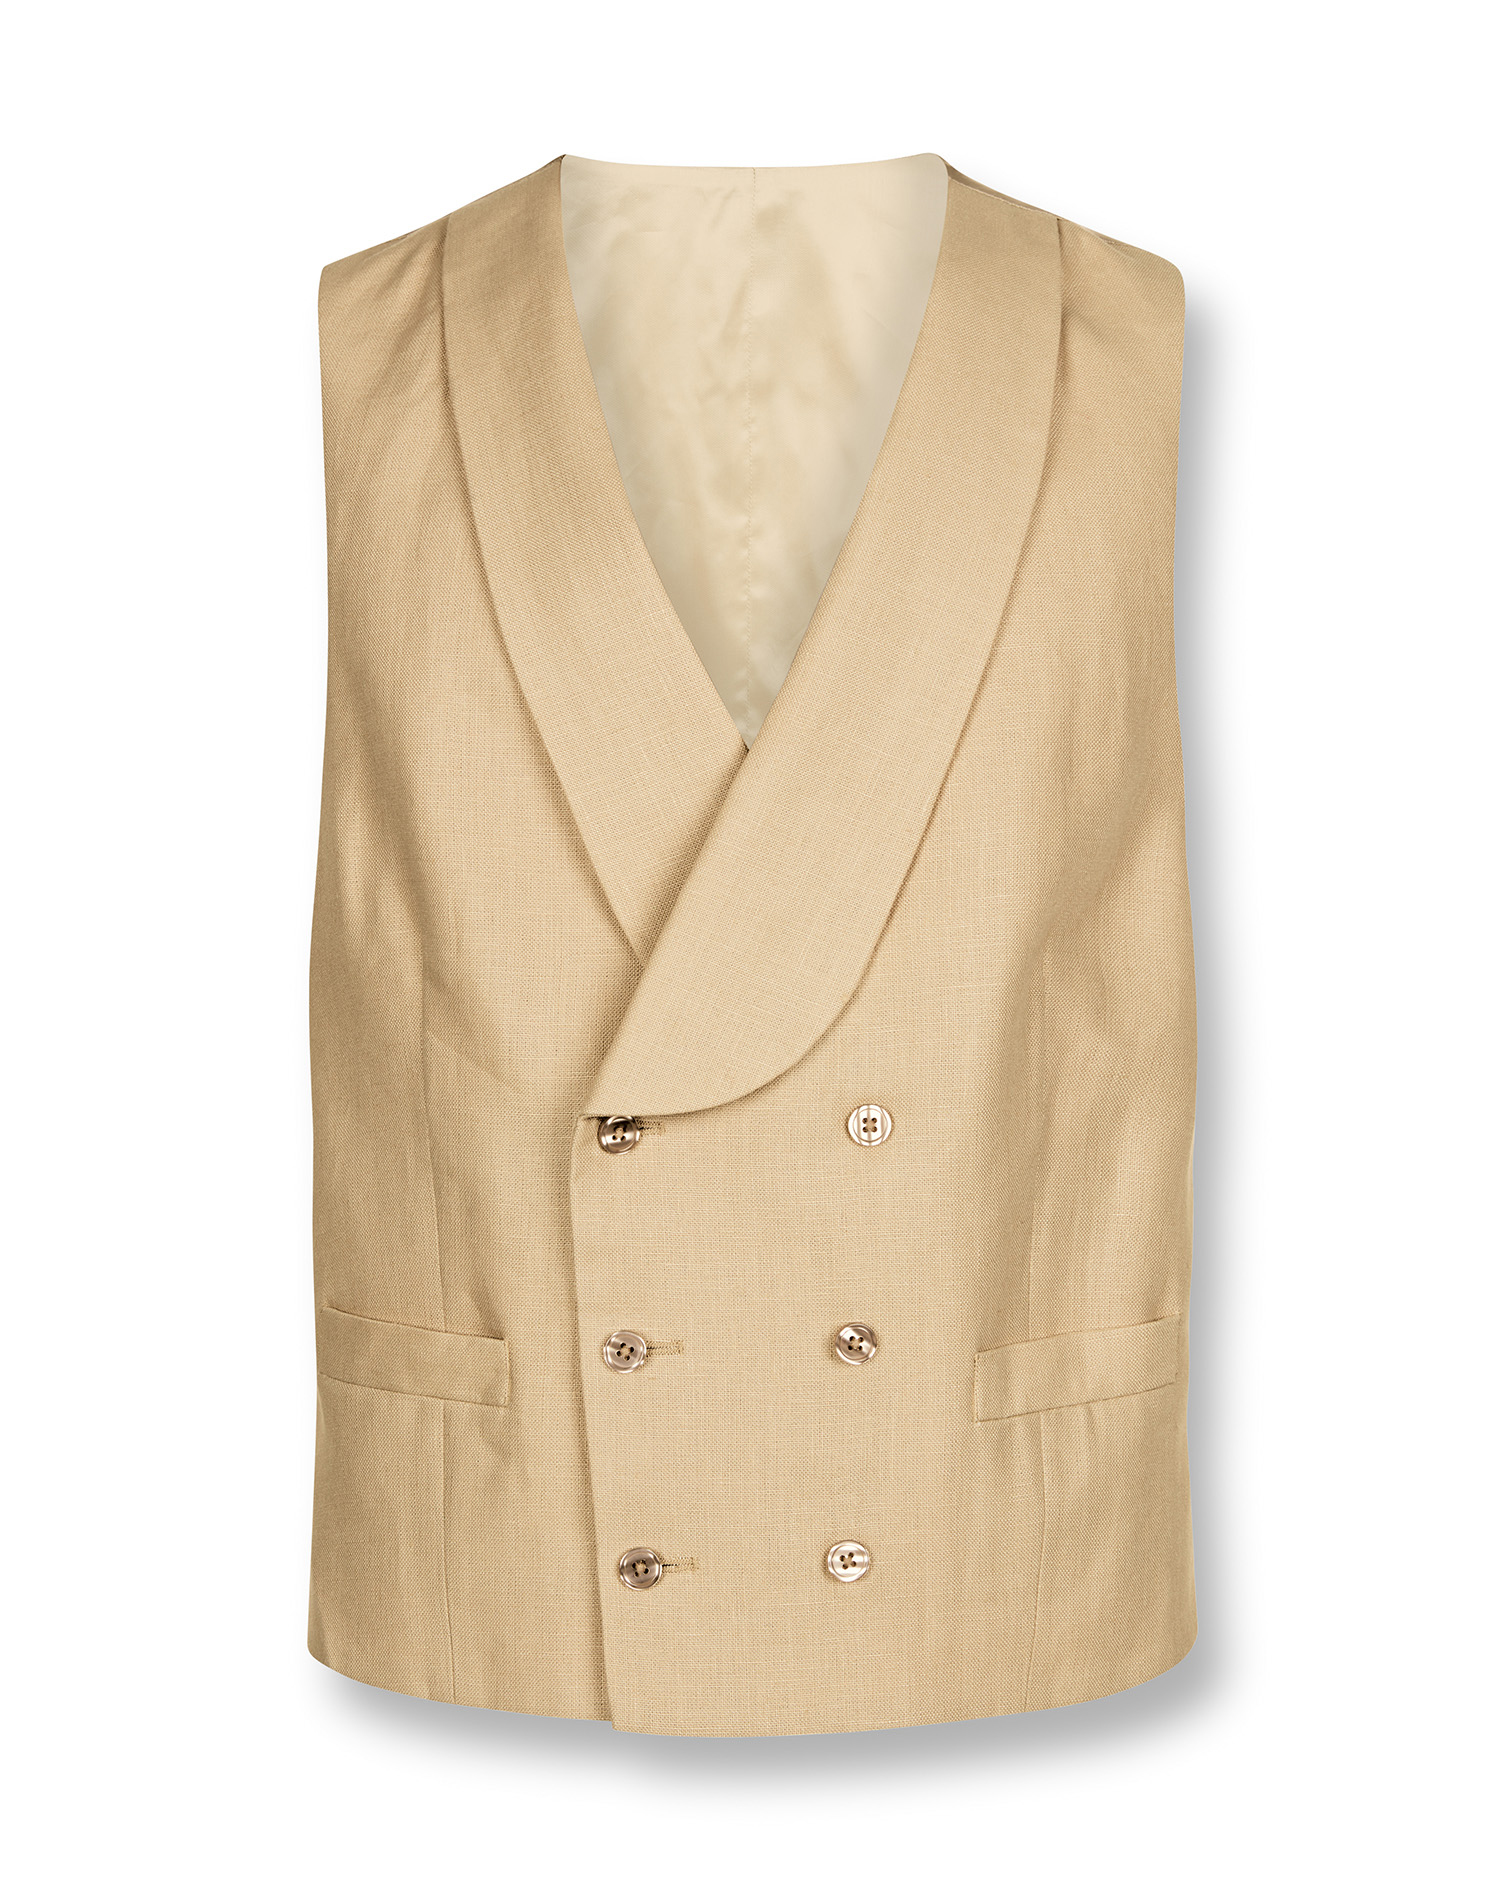 Just like with suits, double-breasted waistcoats are more formal than their single-breasted counterparts and therefore you shouldn't wear double-breasted vests with tweed suits and country clothing.